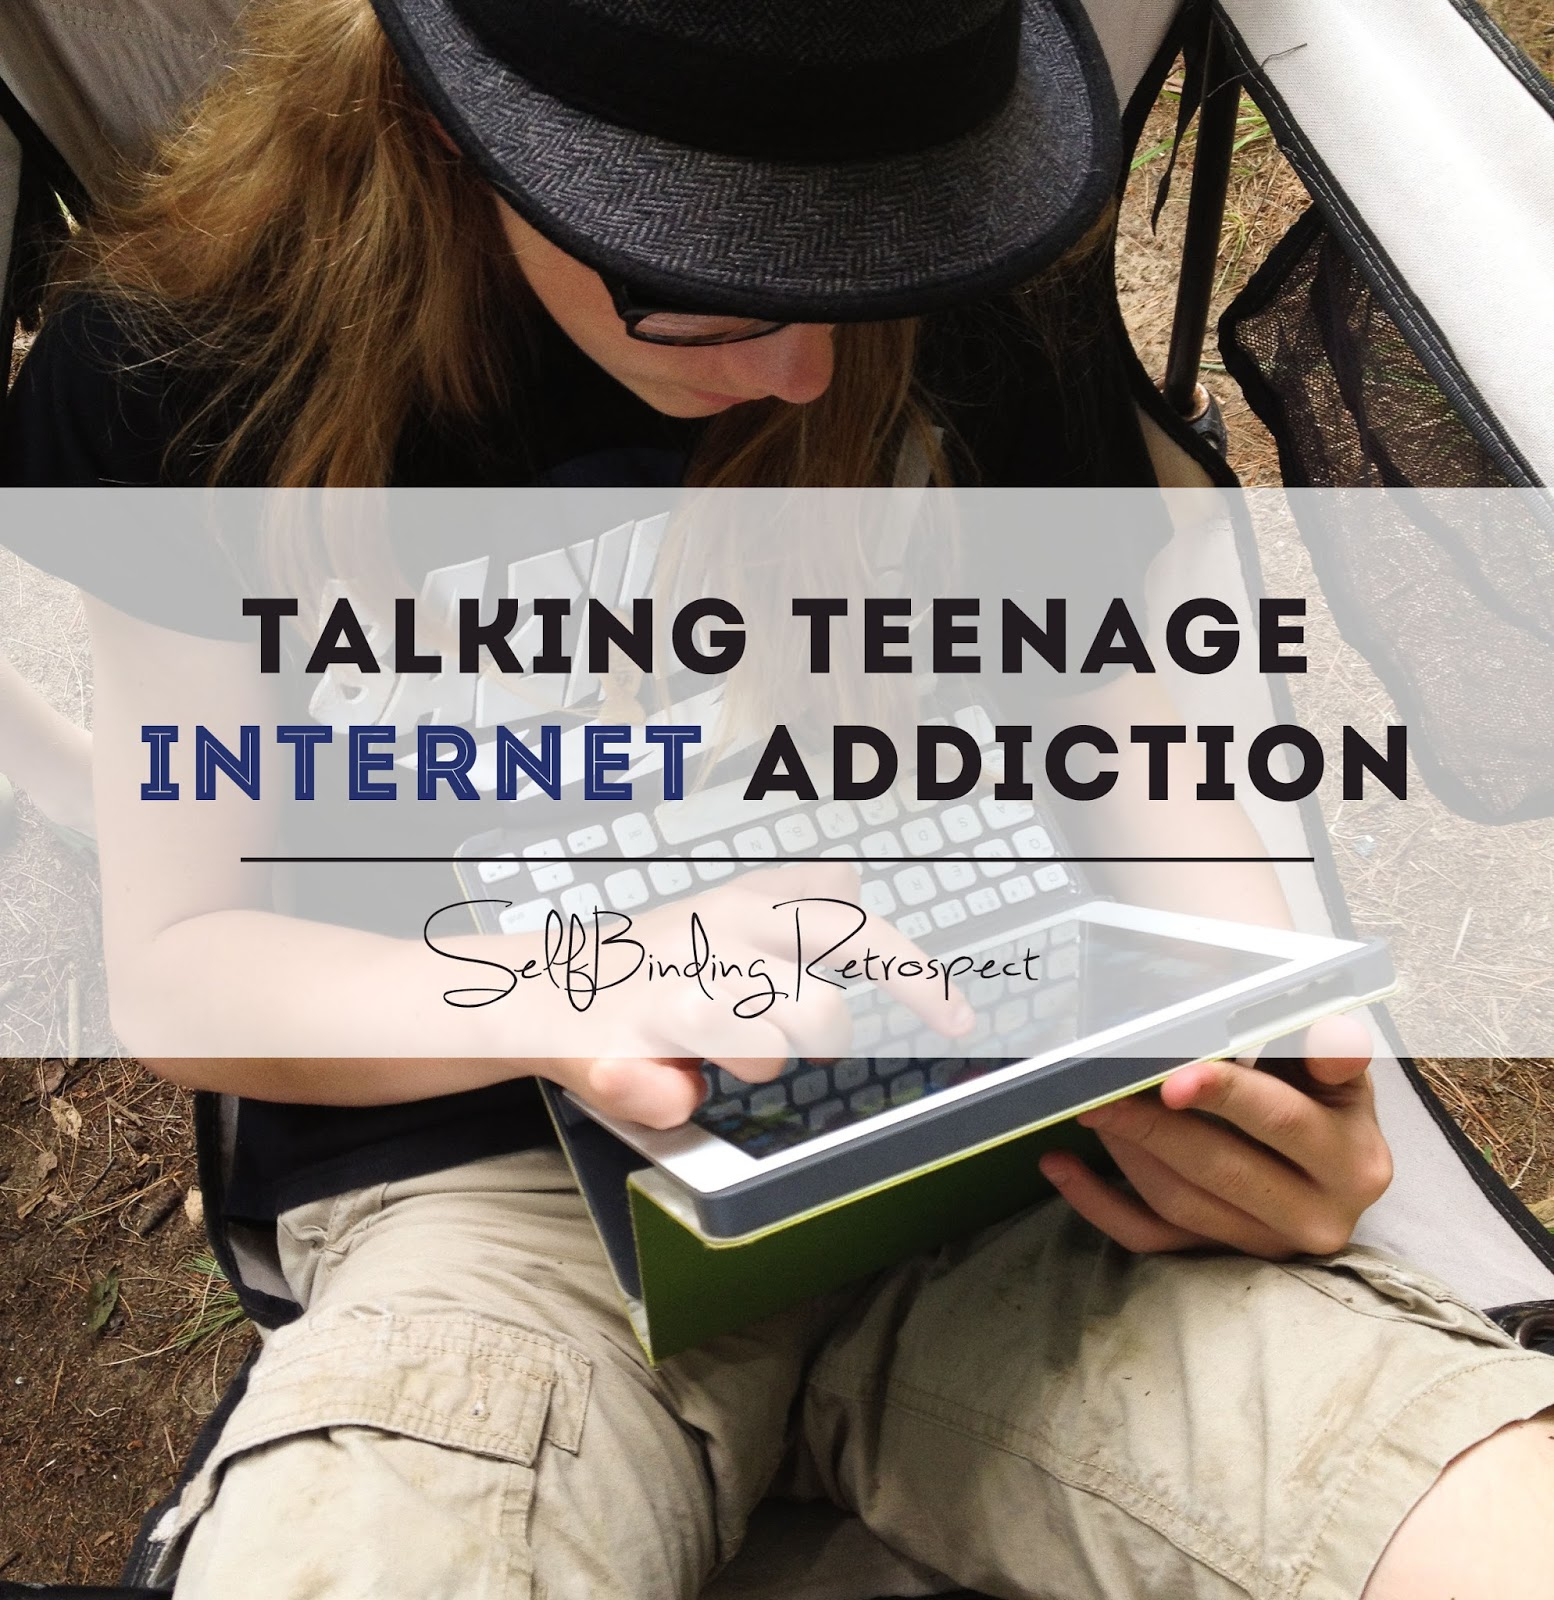 teenagers and internet addiction Understanding how your teen or child uses the internet in their lives is the first step toward dealing with teenage internet addiction talk to your child about the amount of time they spent online and playing video games.